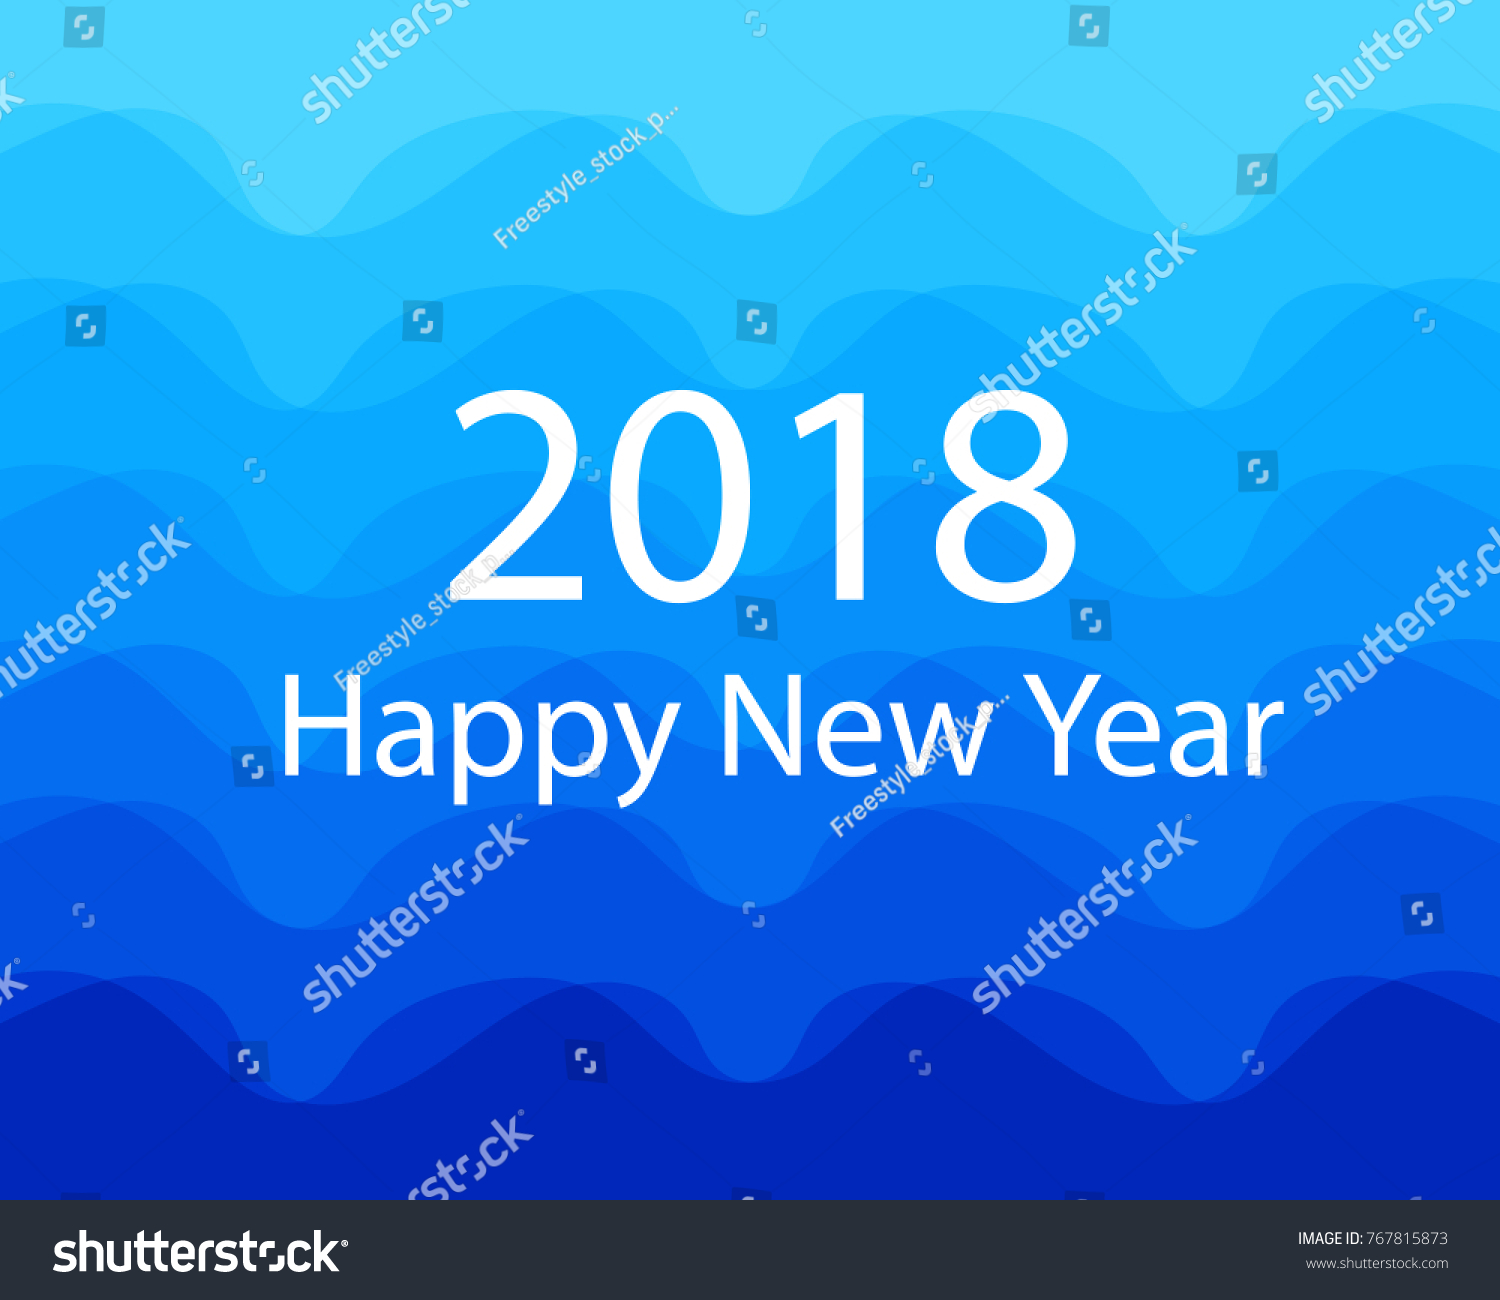 Background Blue Color Happy New Year Stock Vector  Royalty Free     Background blue color Happy New Year 2018 concept flat design